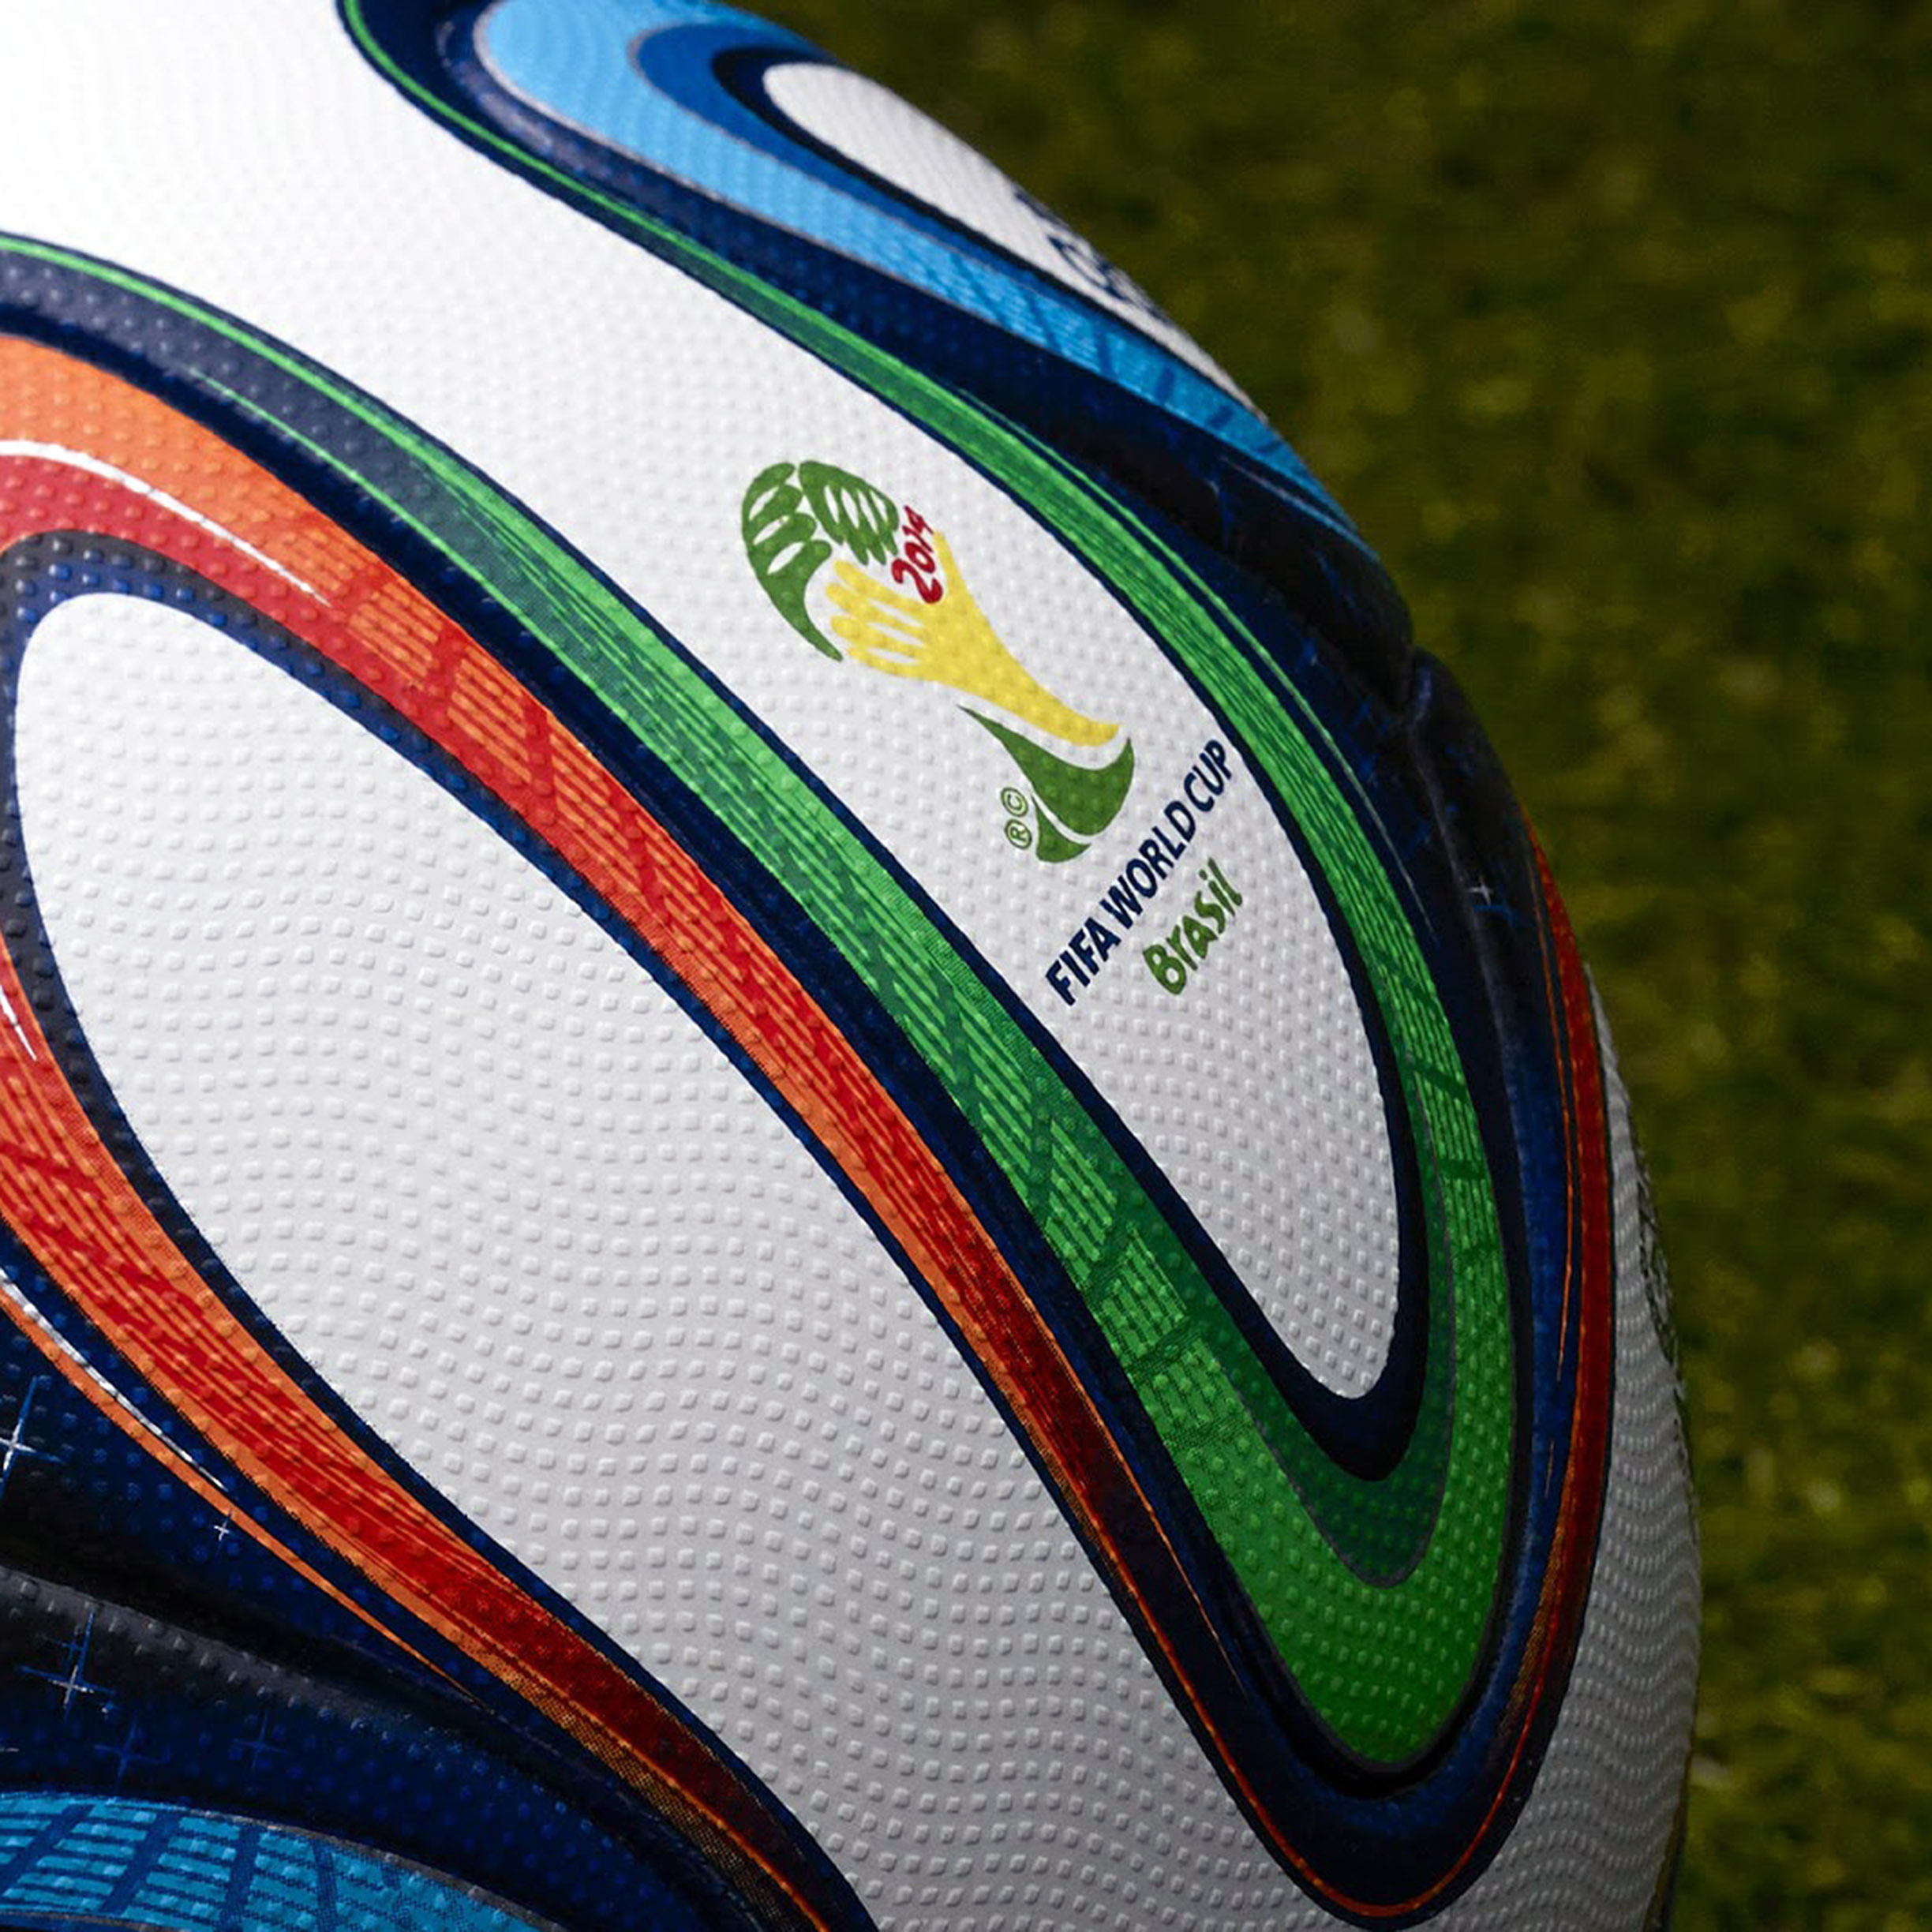 apple_wallpaper_fifa-worldcup-brazil-ball-brazuca-_ipad_retina_parallax